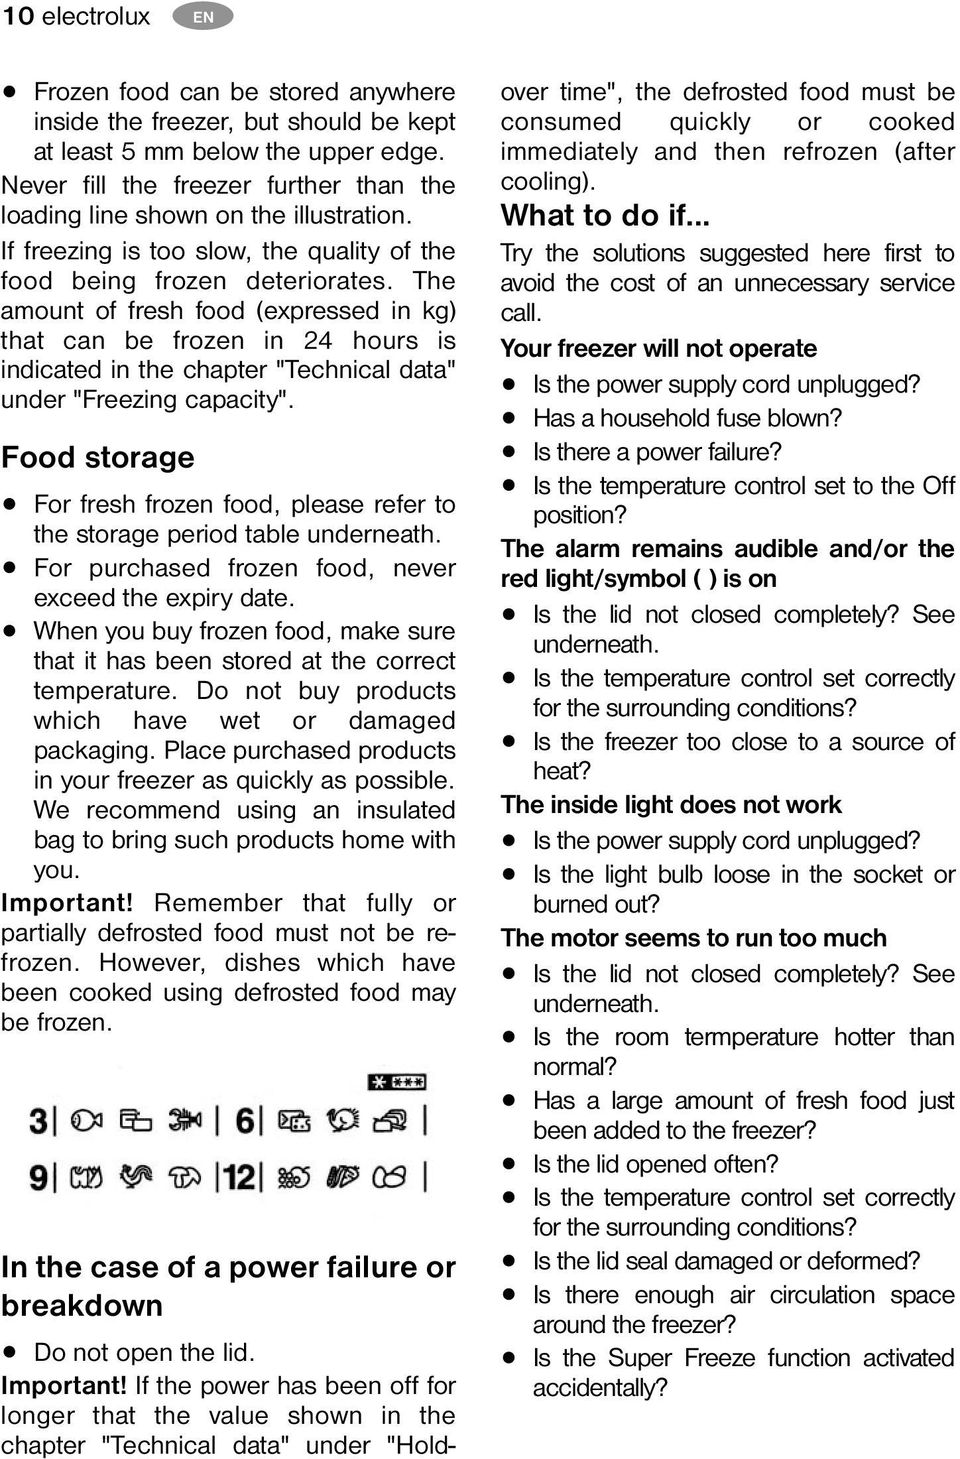 "The amount of fresh food (expressed in kg) that can be frozen in 24 hours is indicated in the chapter ""Technical data"" under ""Freezing capacity""."